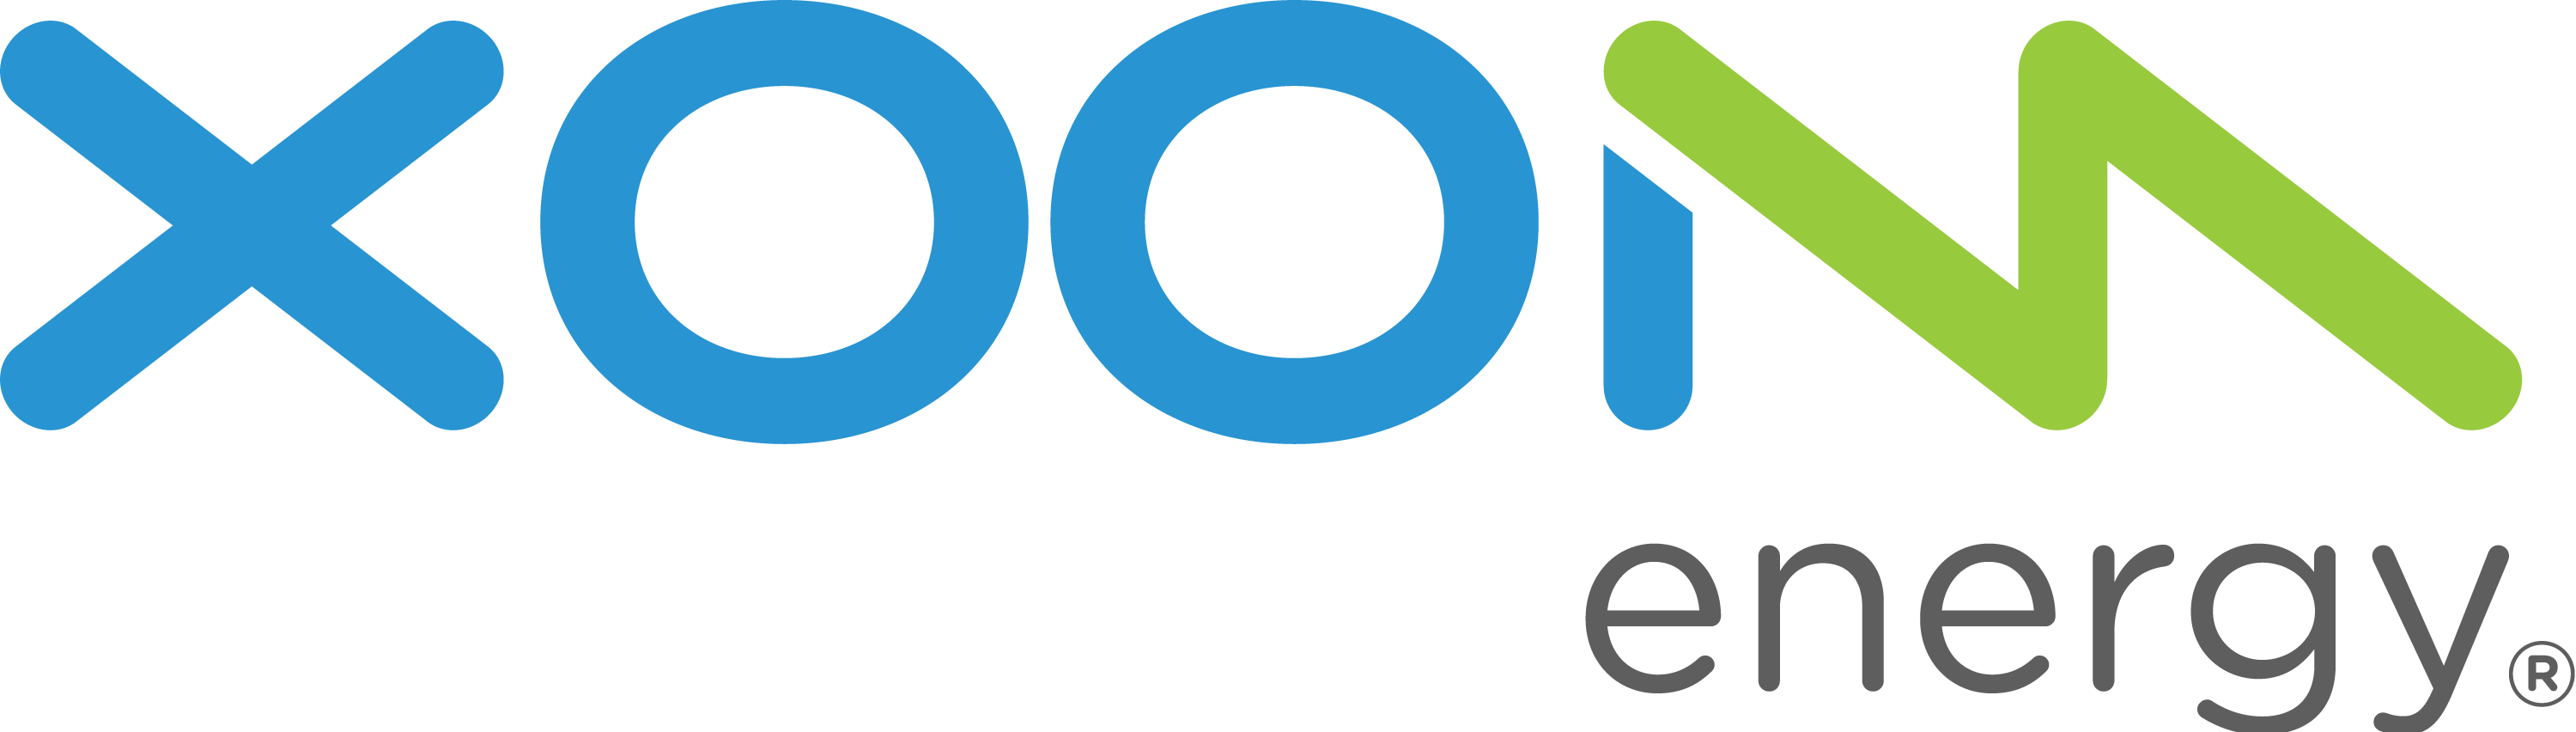 Click to see details for Xoom Energy Michigan, LLC  offer. Price 2.19